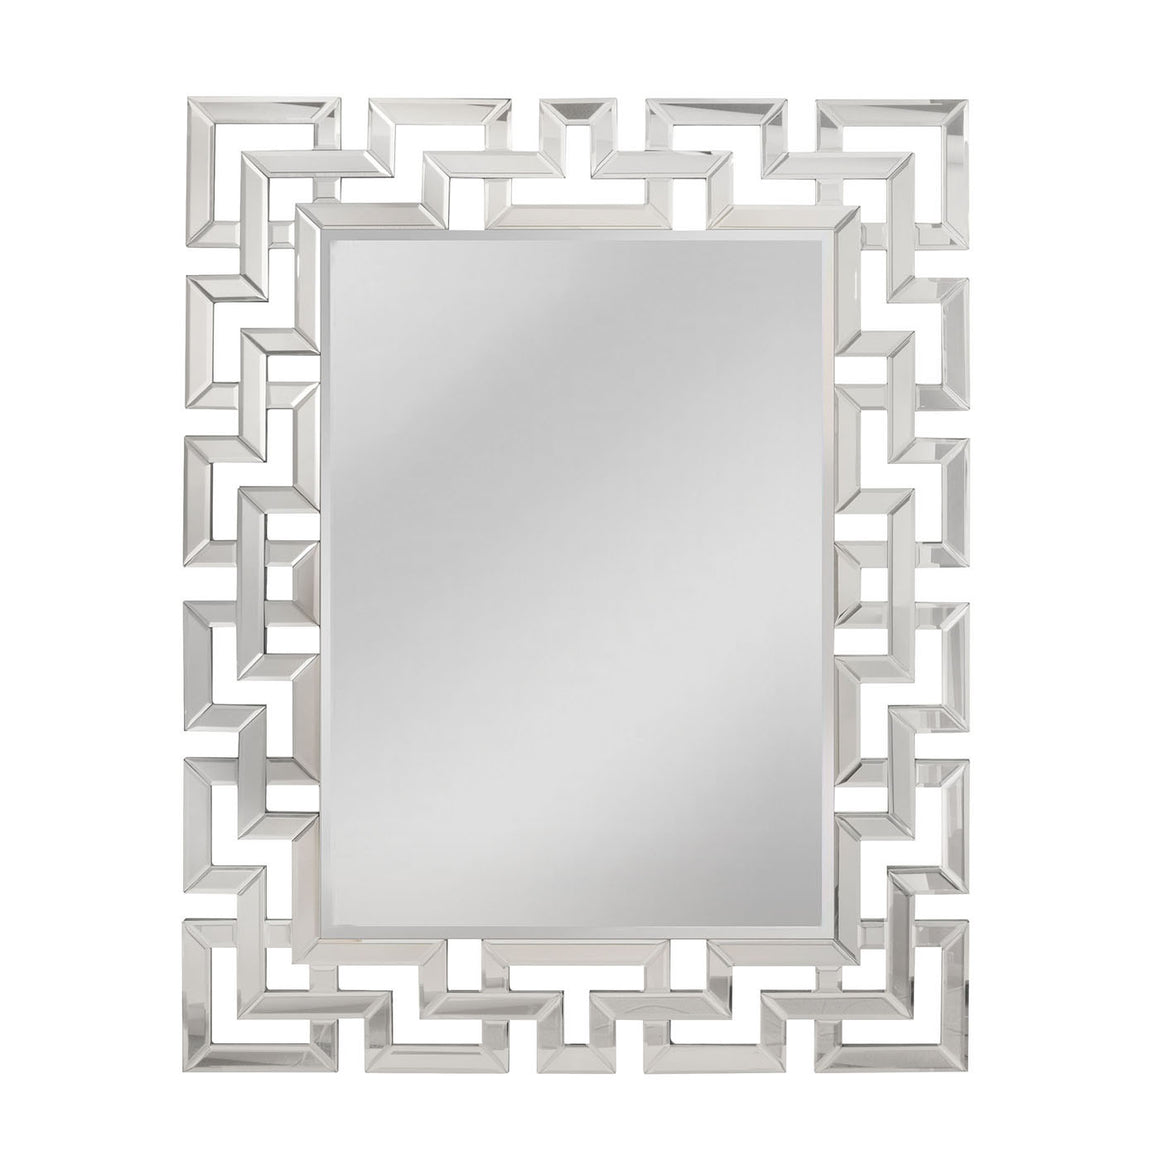 "Greek Key Motif Mirror 47"" x 37"""